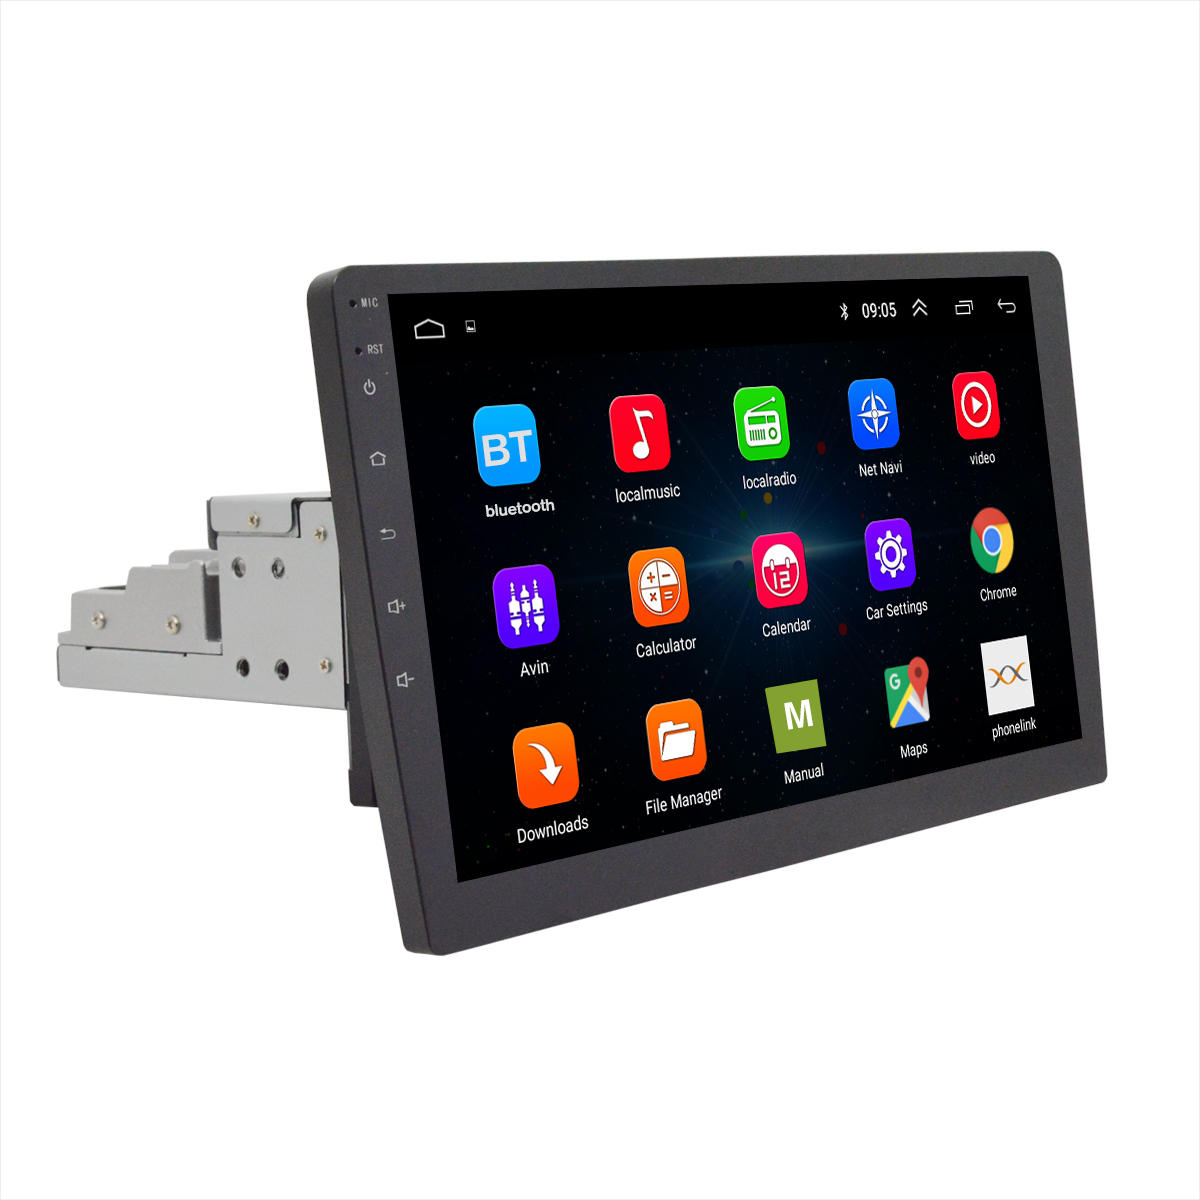 10.1 Inch 1Din for Android 8.0 Car MP5 Player Radio Stereo 2G+32G 8 Core GPS Wifi Rotation Adjustable Touch Screen FM AM